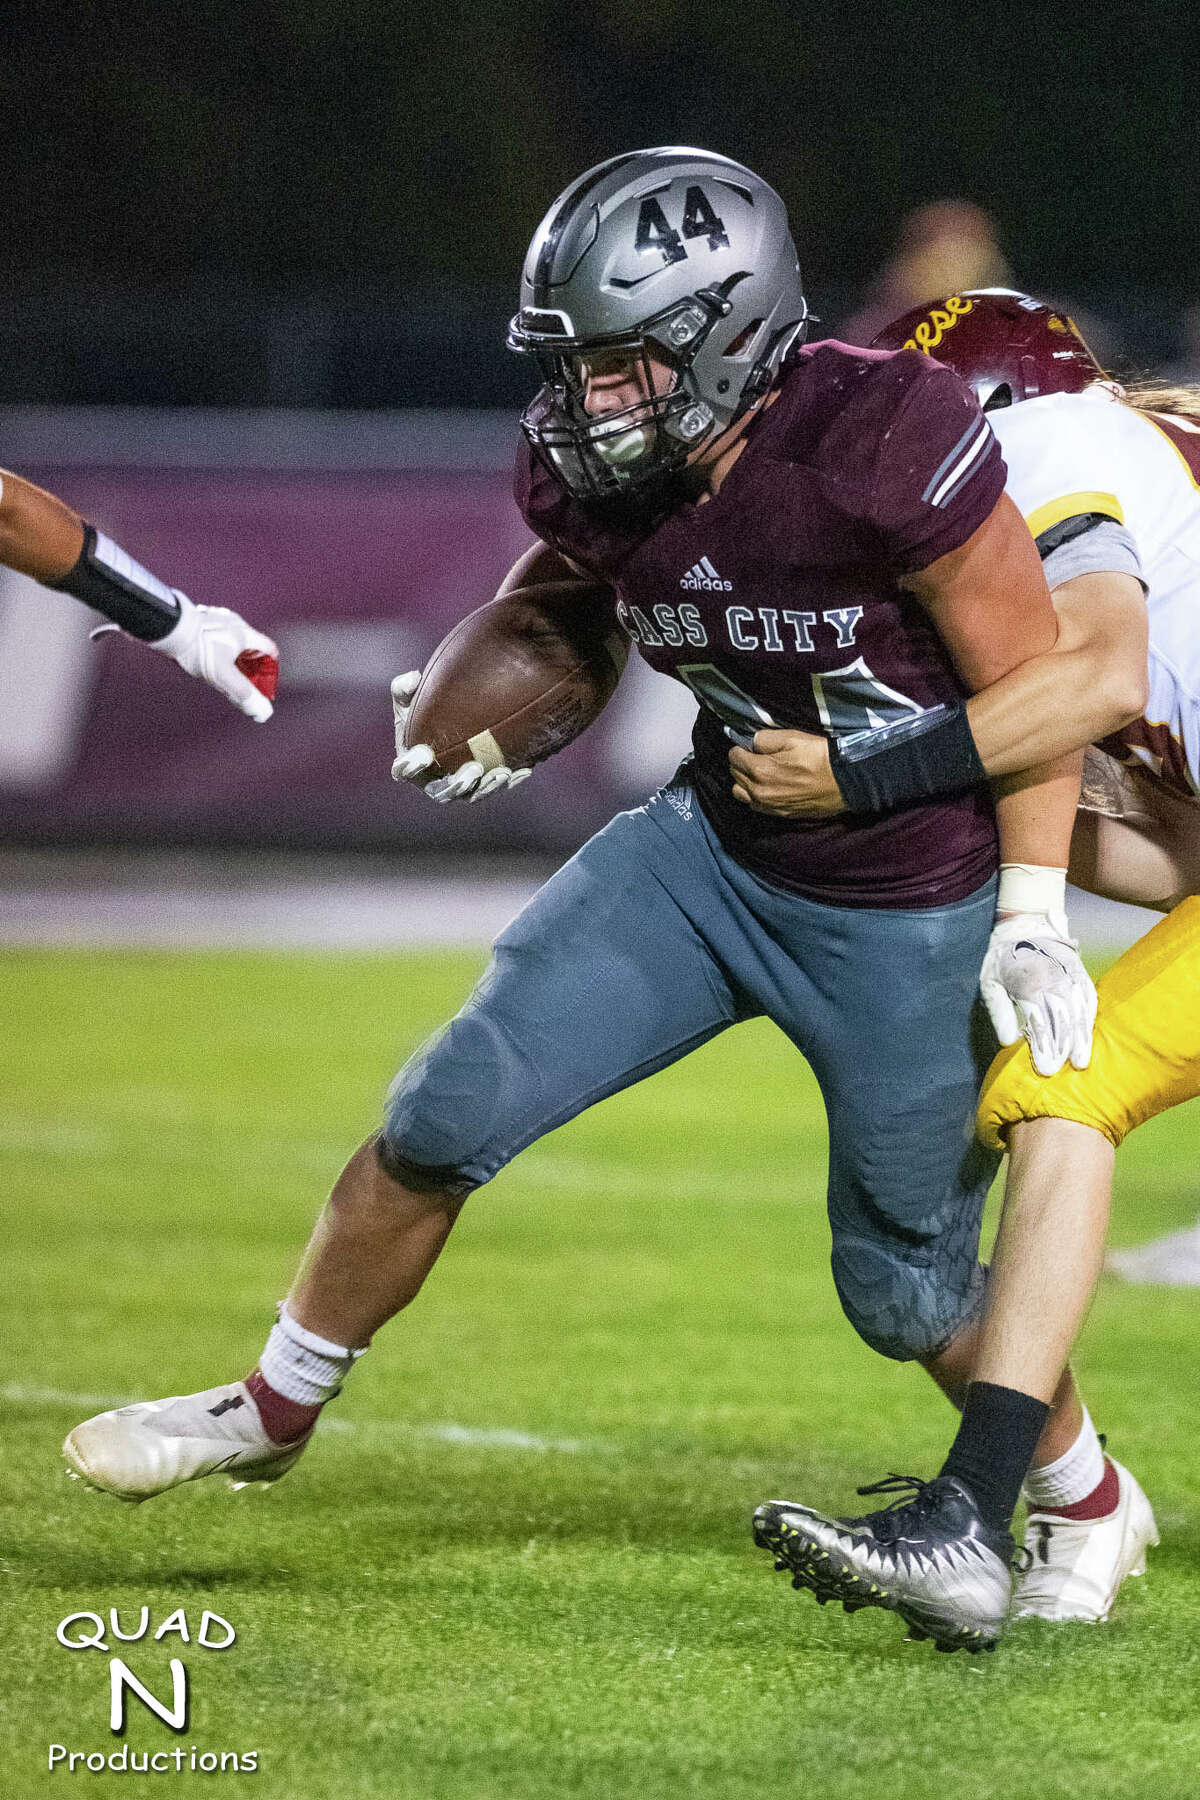 The Red Hawks football team kept rolling in Week 2 as Cass City topped the visiting Reese Rockets, 42-3, on Friday night.